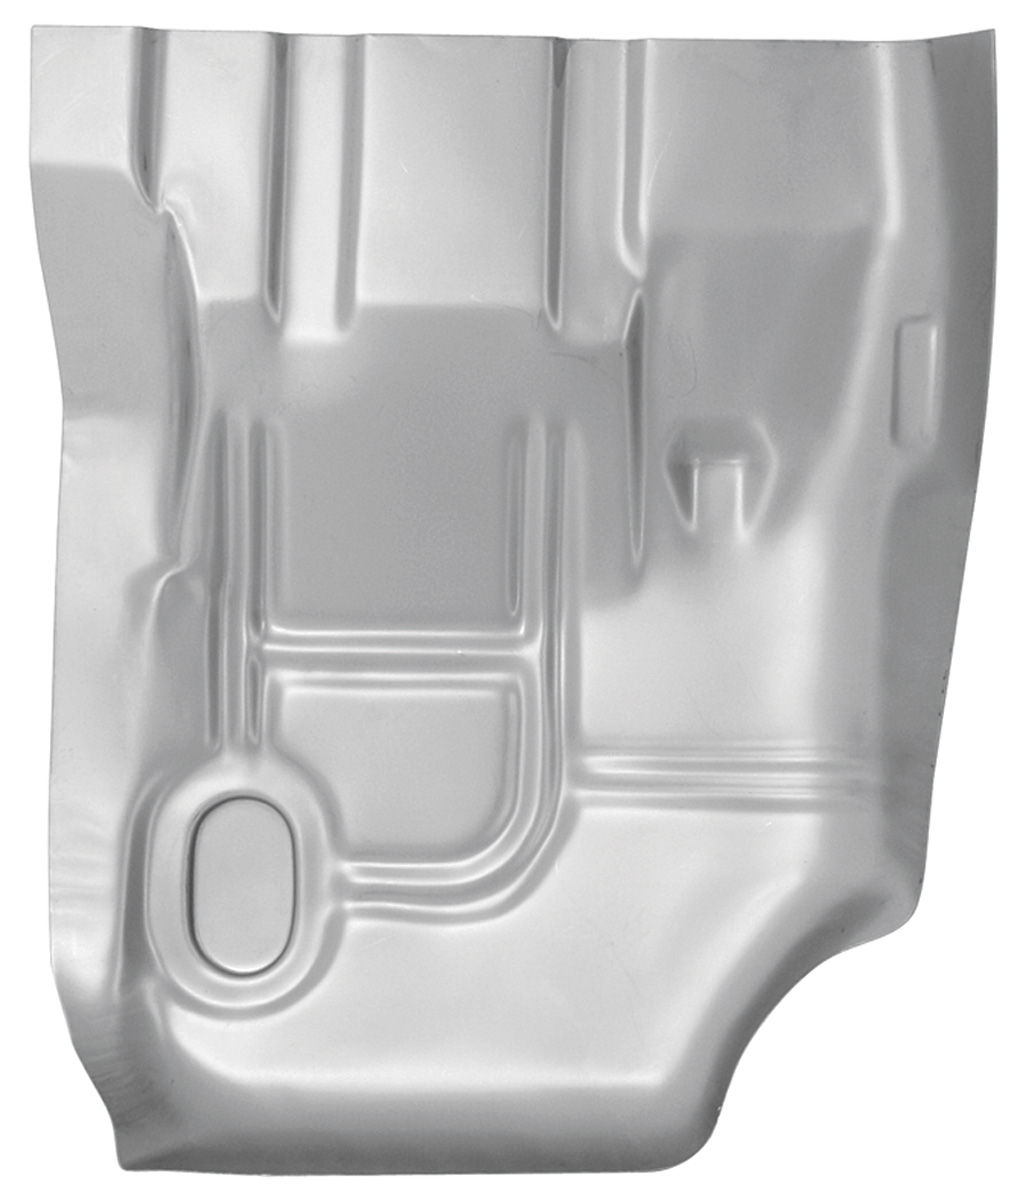 Photo of Chevelle Floor Pan Sections, 1973-77 (Steel) rear